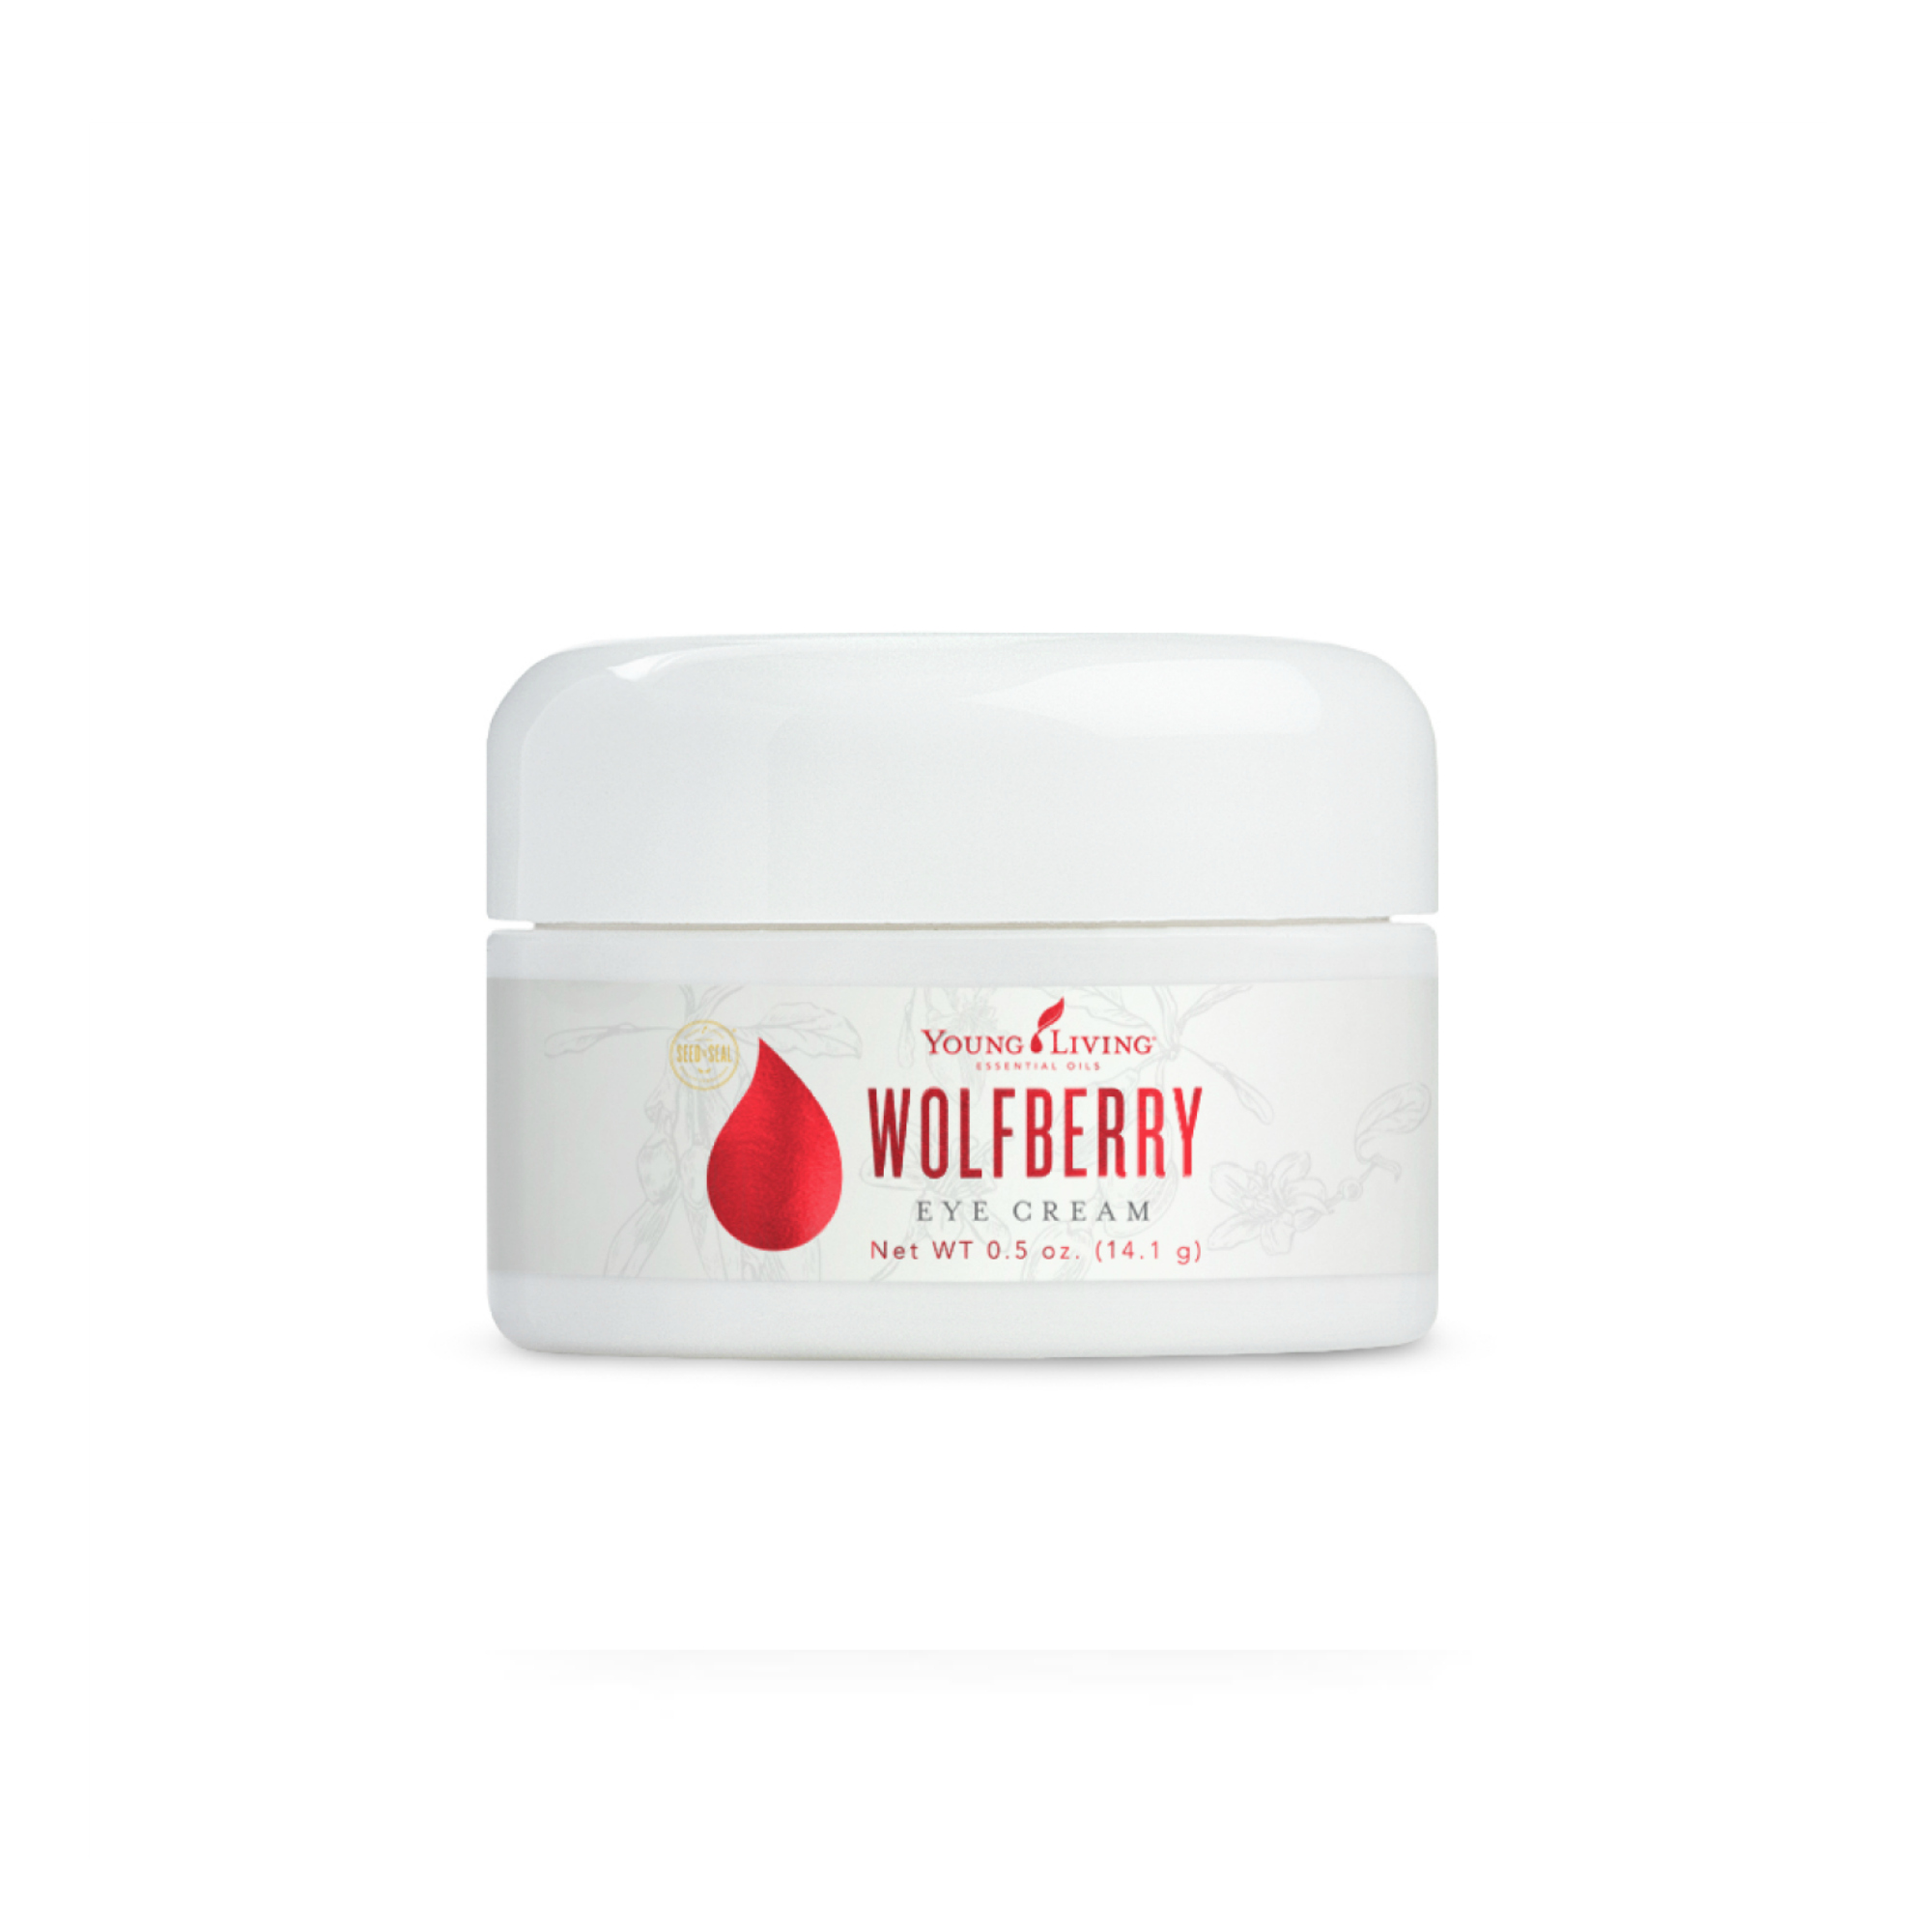 WOLFBERRY EYE CREAM    Wolfberry Eye Cream is a natural, water-based moisturizer. Containing the antiaging and skin-conditioning properties of wolfberry seed oil, this cream soothes tired eyes and minimizes the appearance of fine lines. This is a great cream to be applying at night before bed or in the morning before applying makeup.   Click here     to learn more about this product.